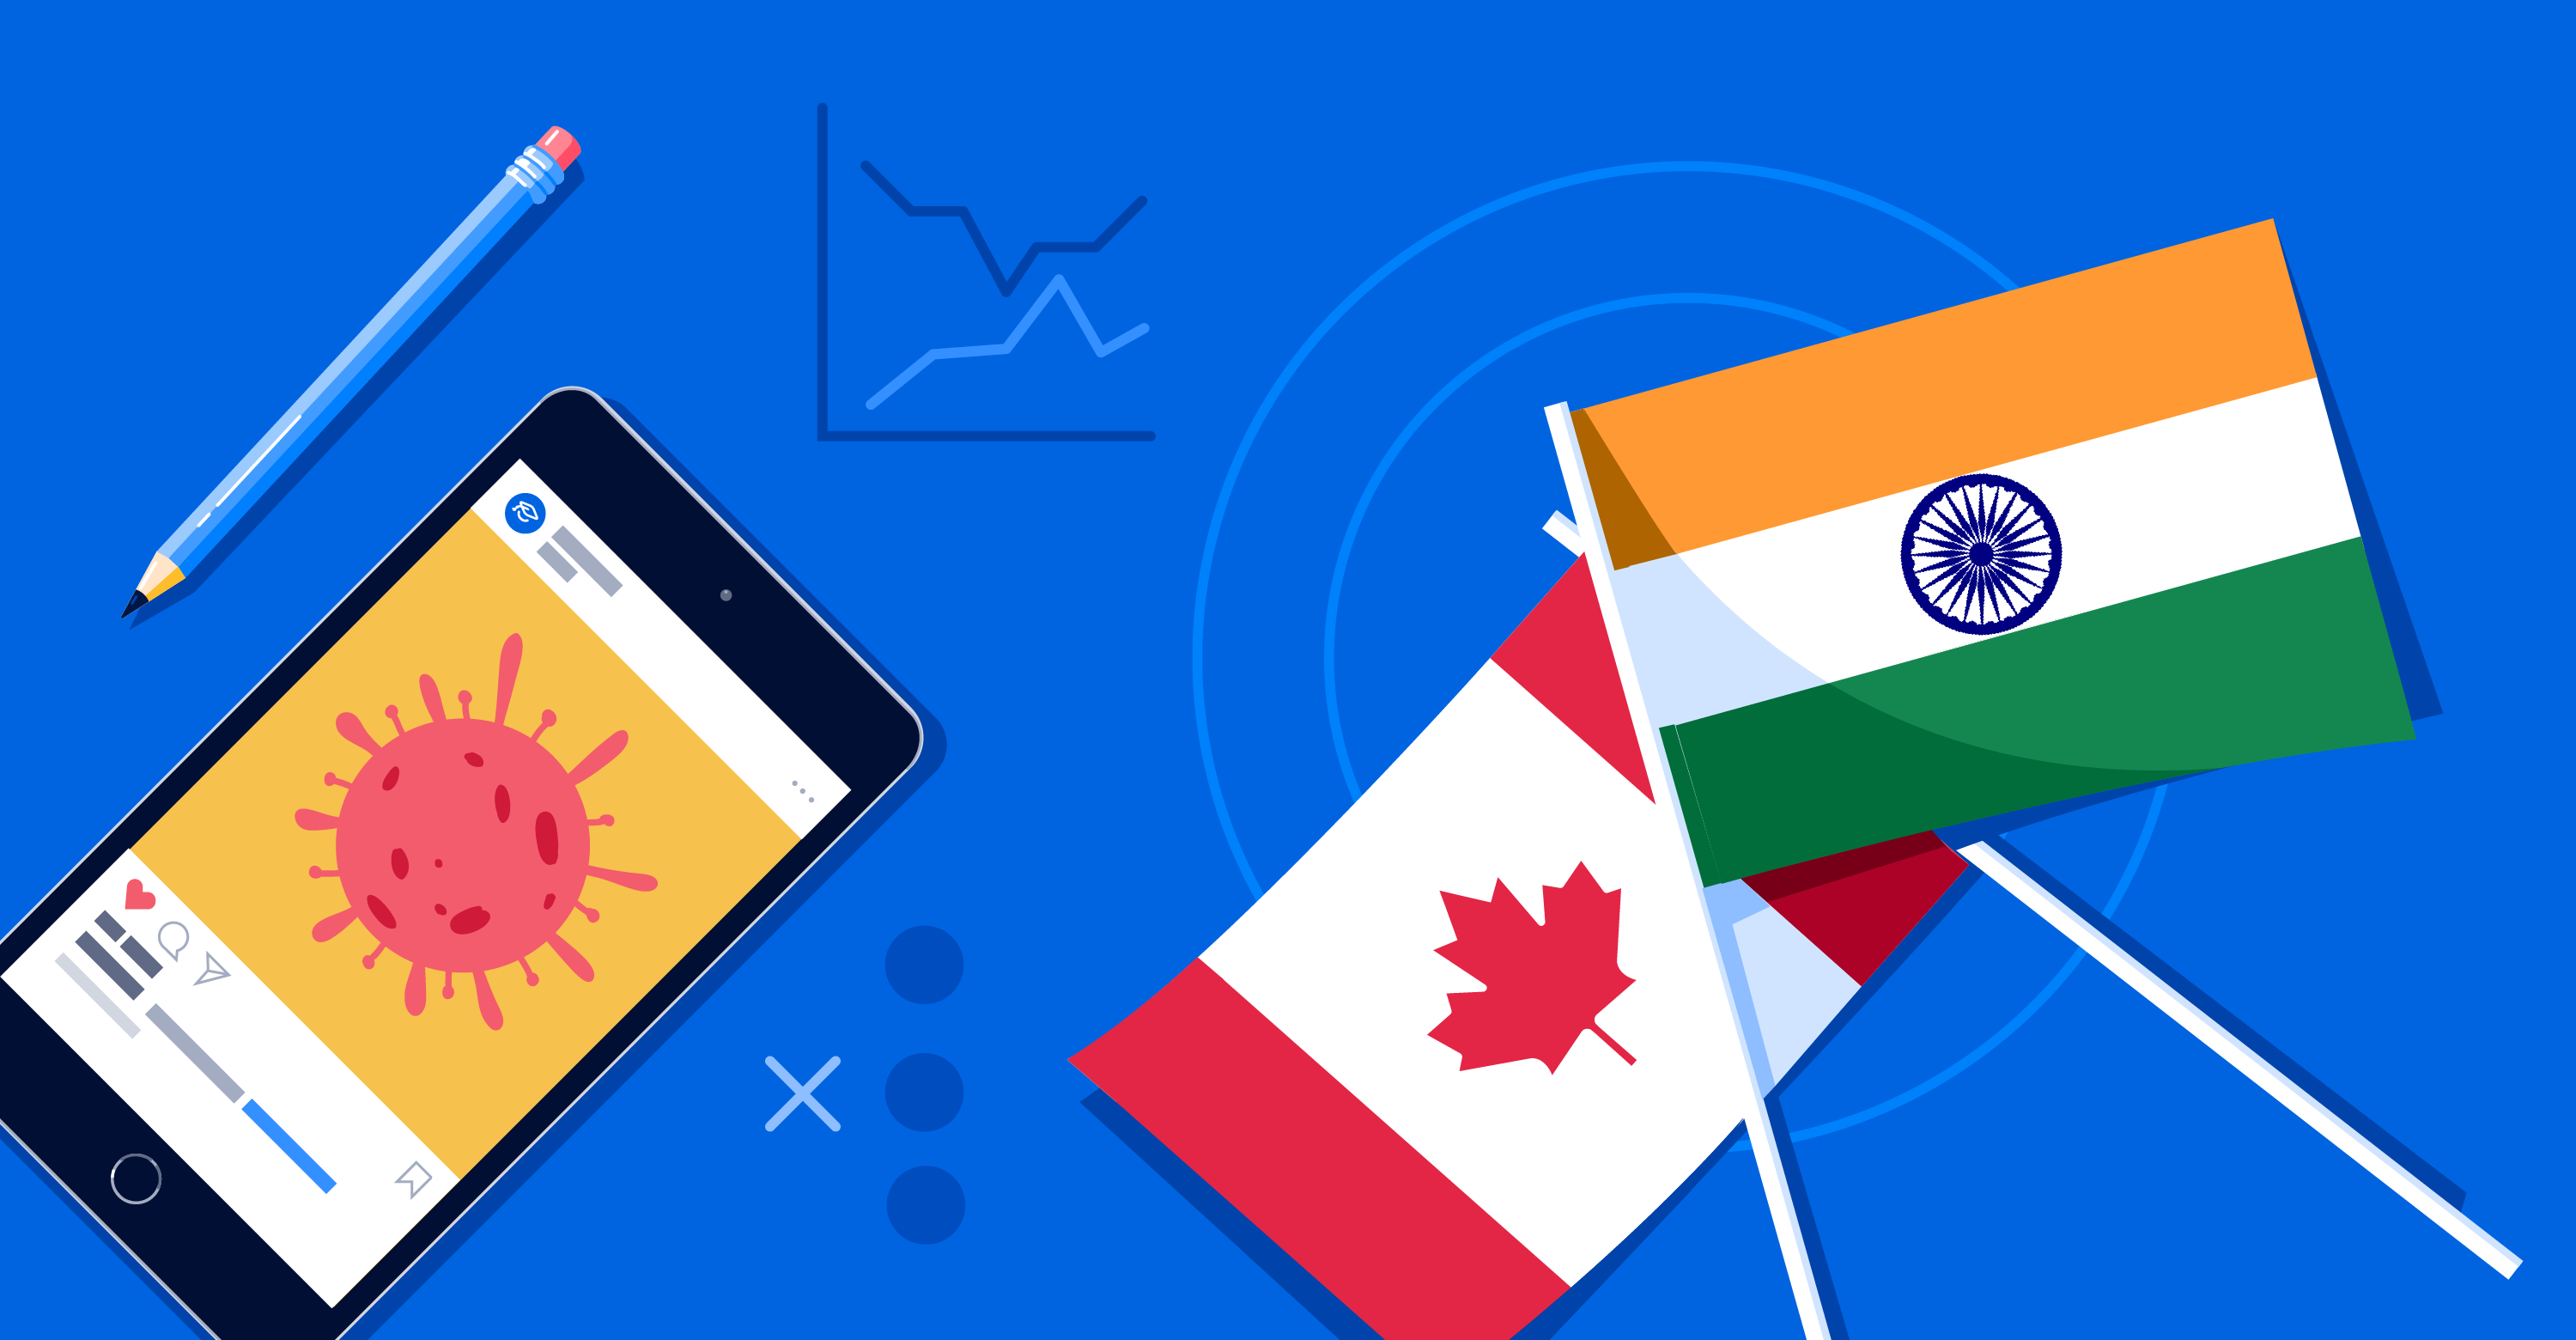 Illustration of Canada and India flags and device